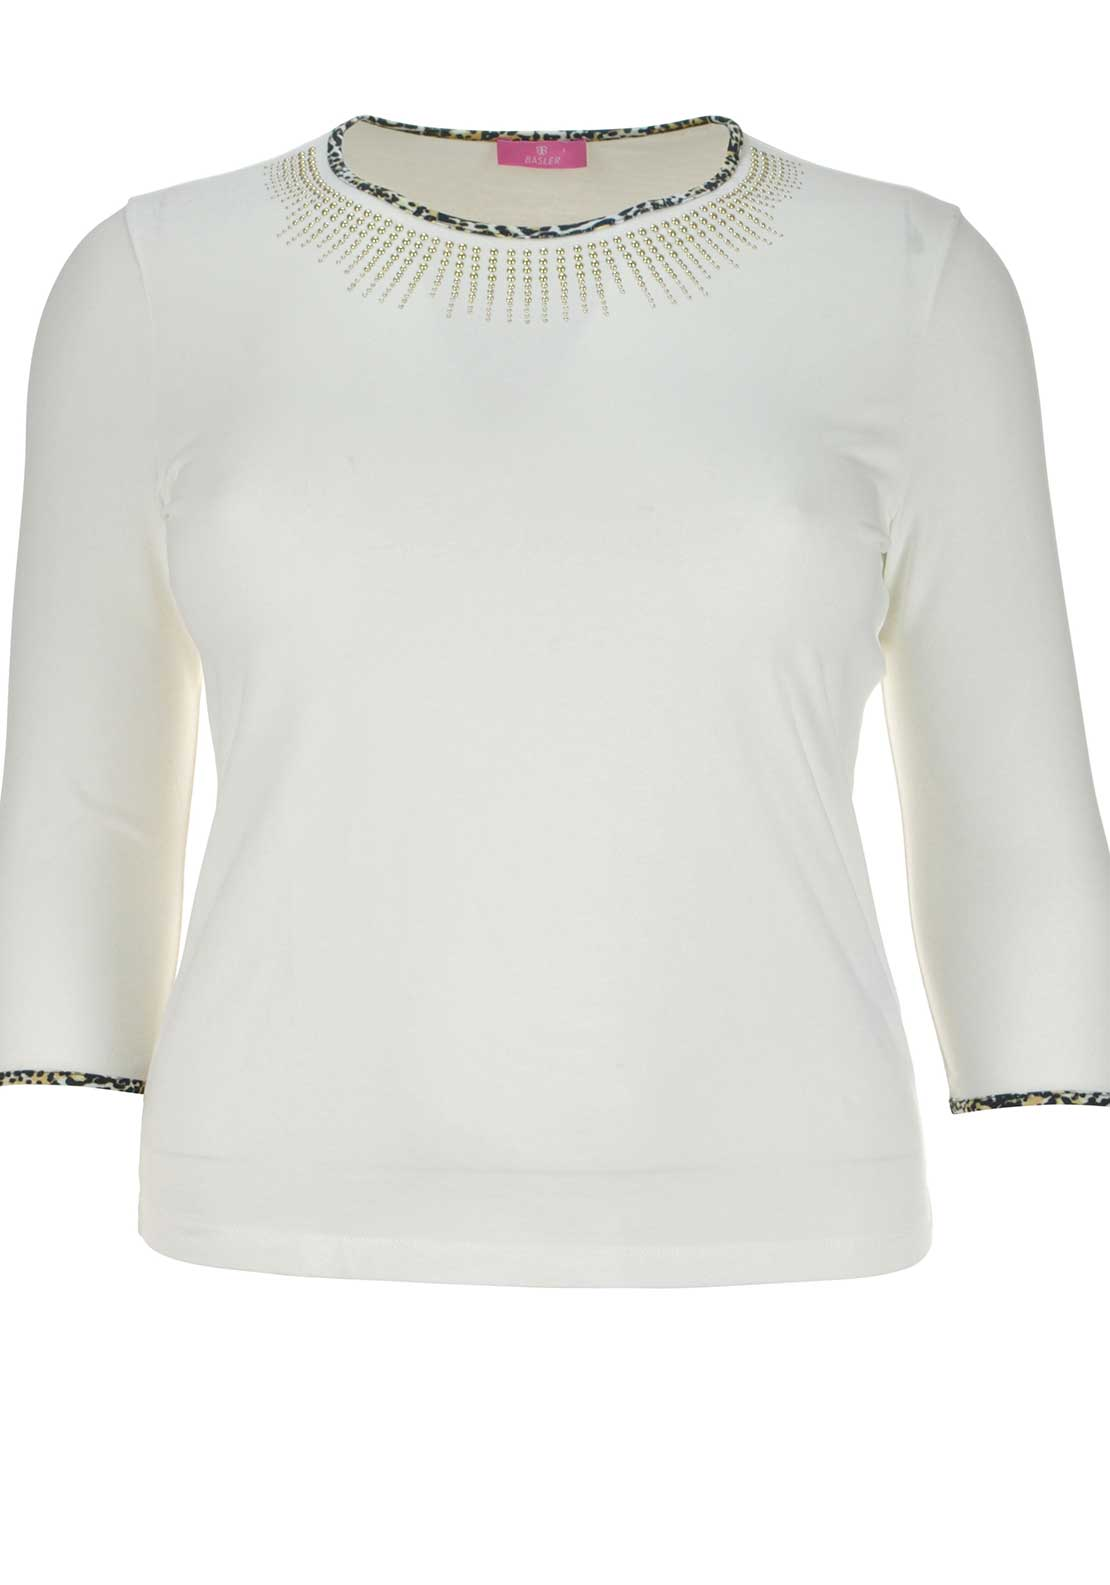 Basler Embellished Leopard Print Trim Cropped Sleeve Top, White